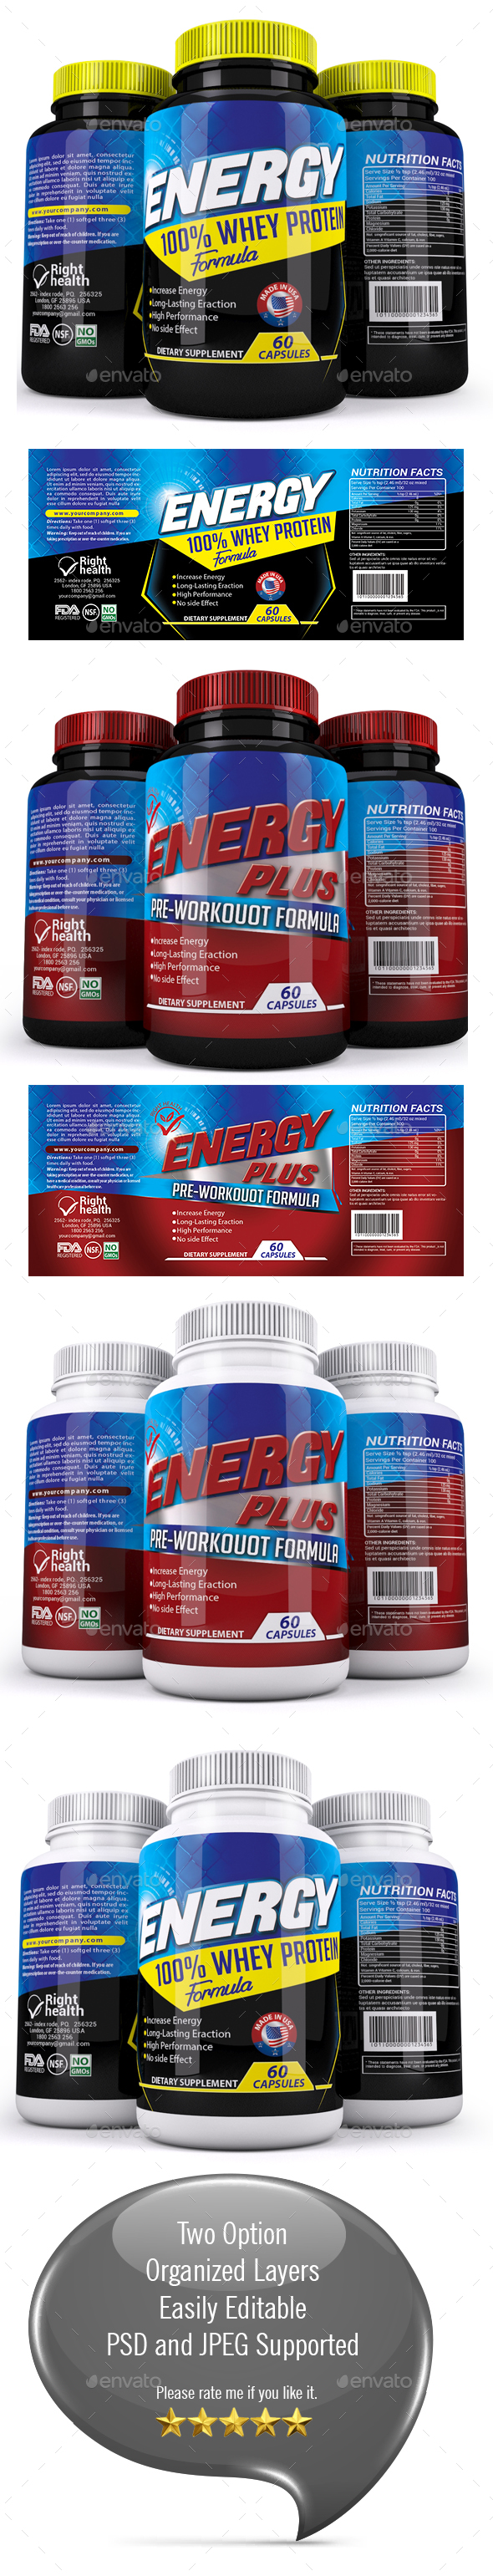 Whey Protein  Supplement Label Template Vol-37